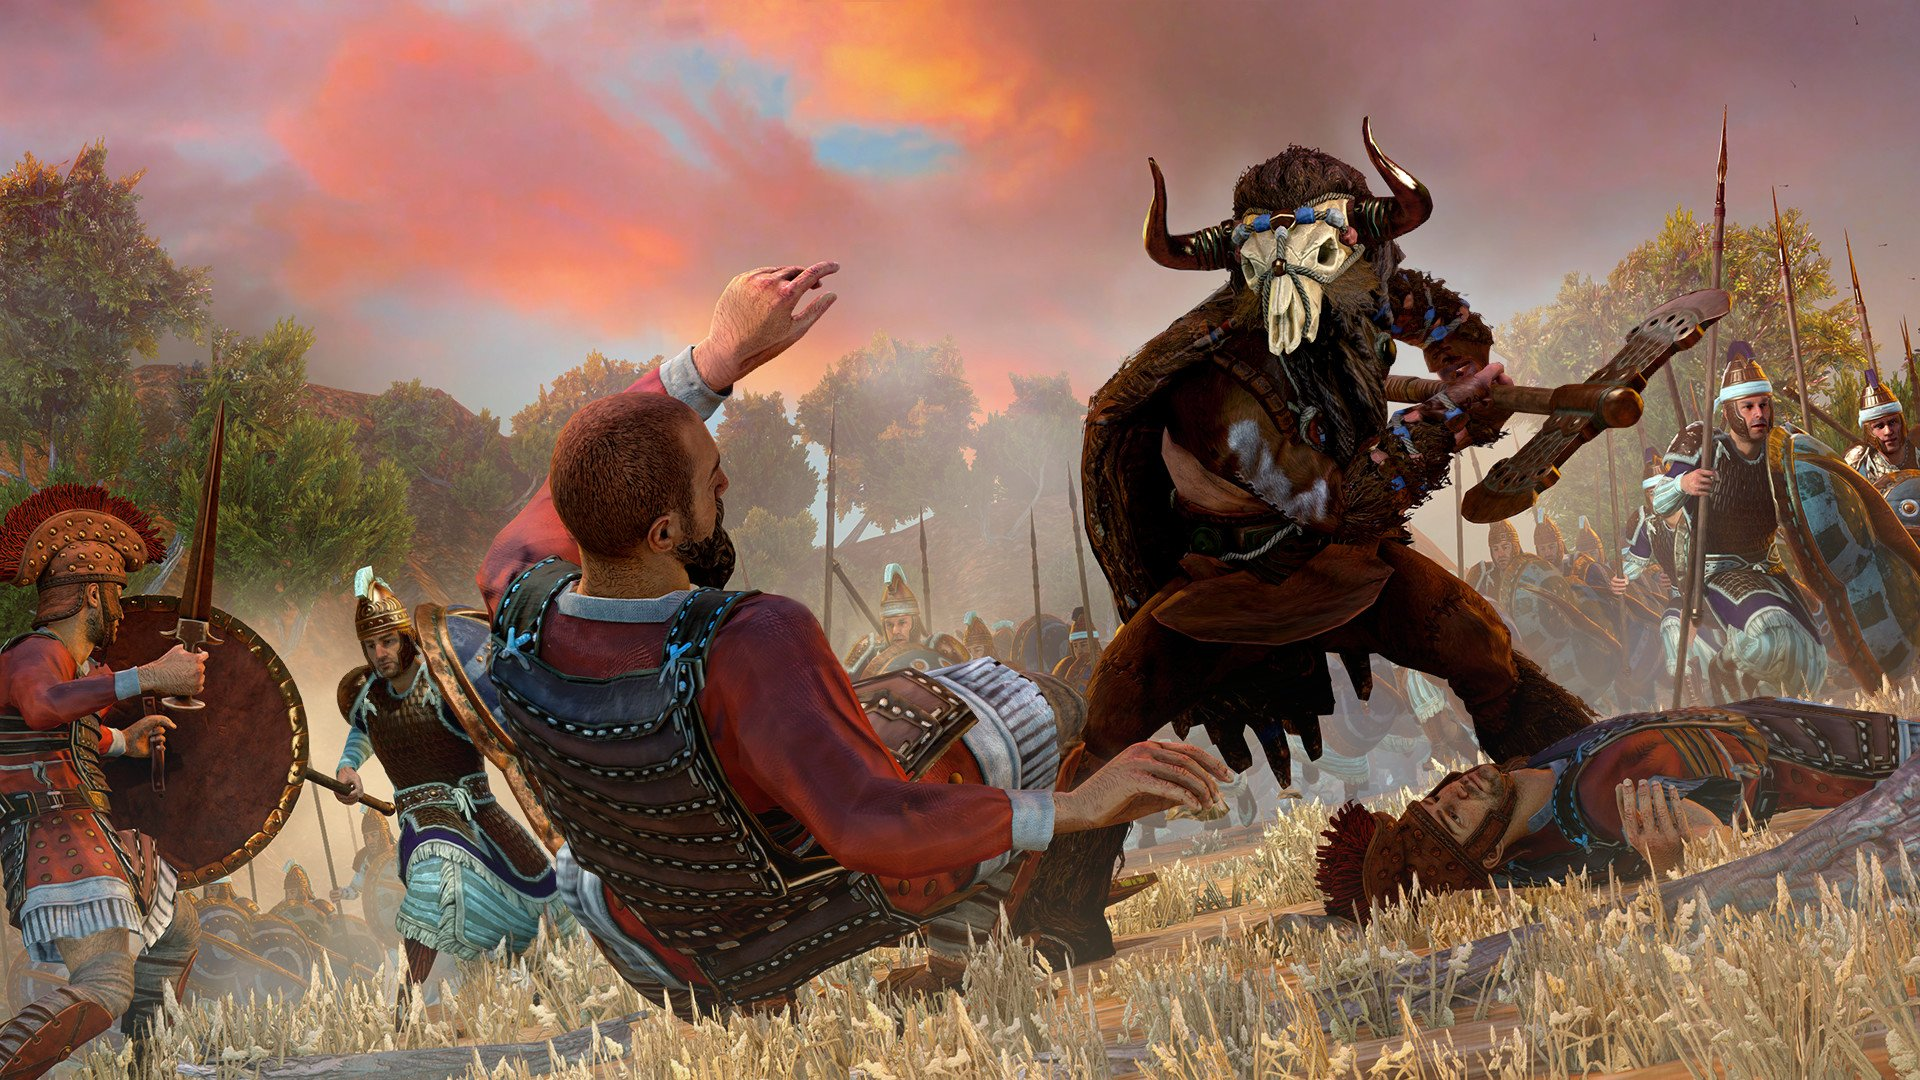 Total War Saga: Troy will be free at launch, but only if claimed in the first 24 hours screenshot